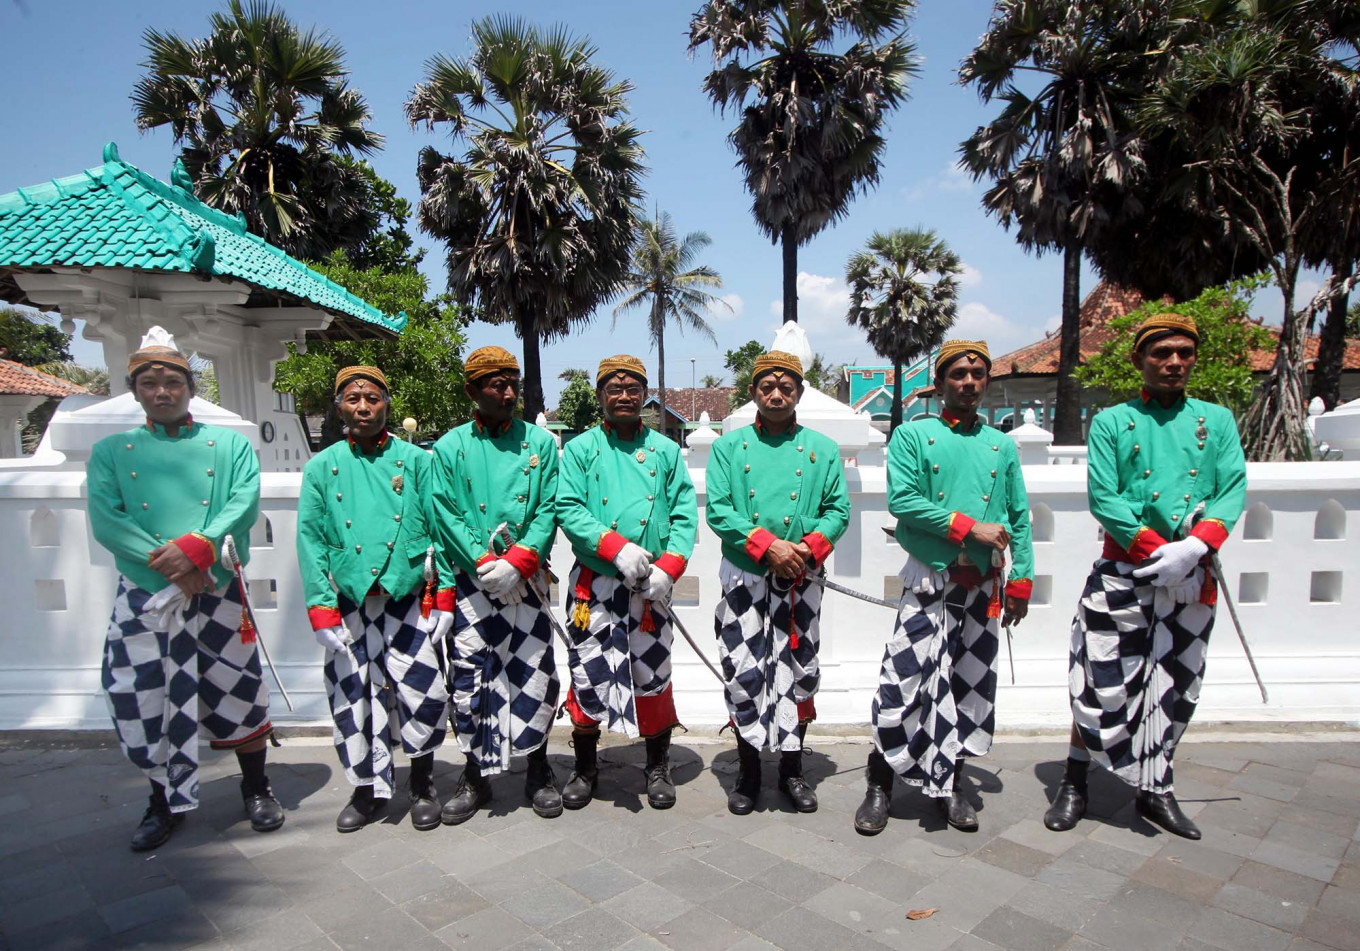 Ready to commence: Kasunanan Surakarta Palace guards pose before the masonry wall of the tomb of Panembahan Senopati, the founder of the Mataram Sultanate. JP/Boy T Harjanto